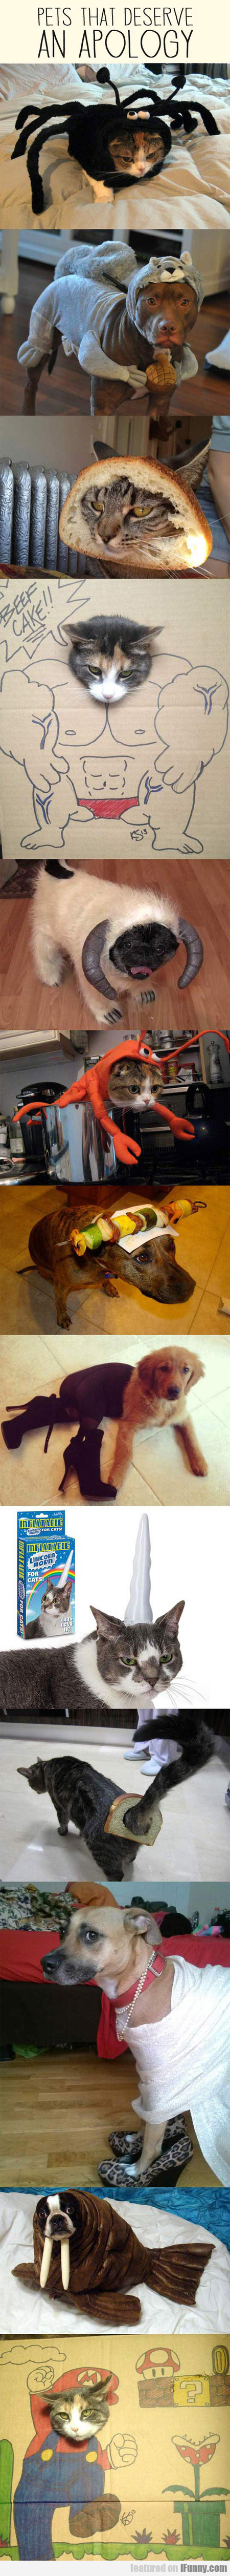 Pets That Deserve An Apology